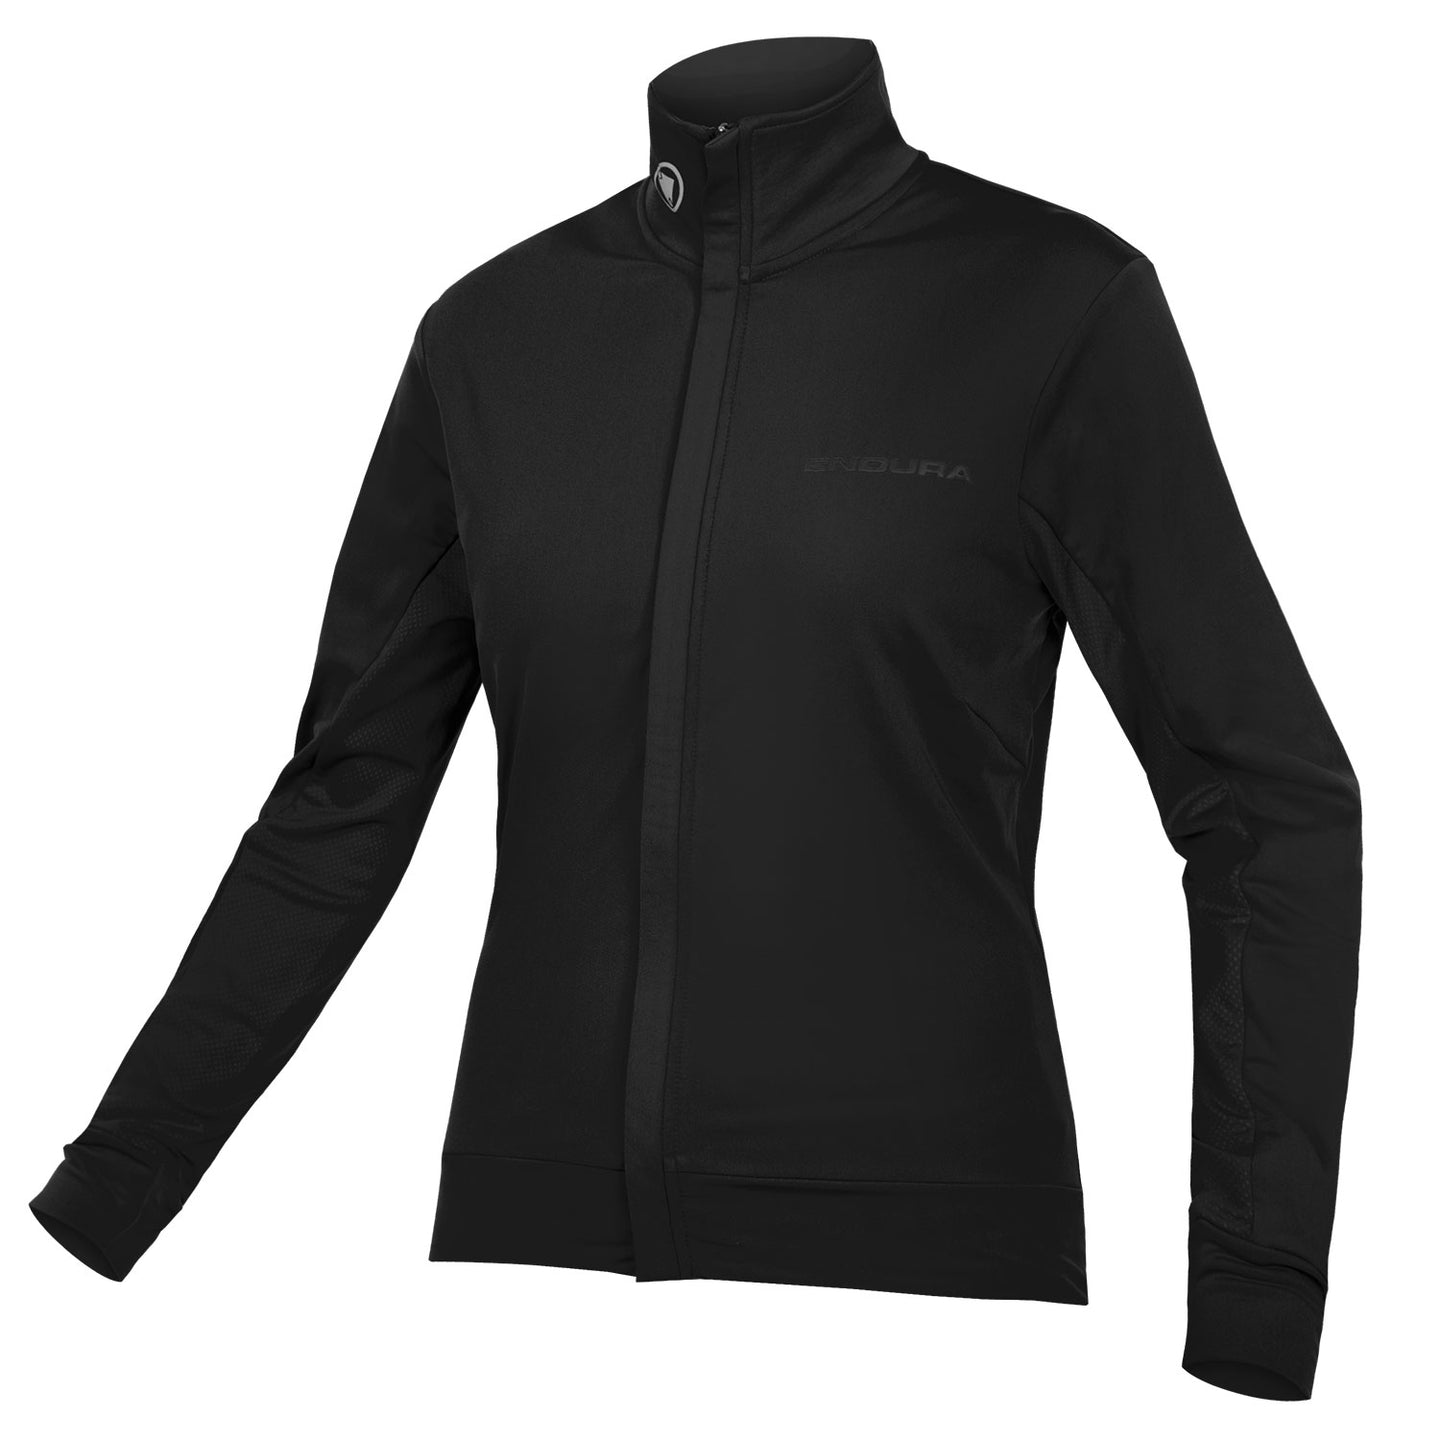 Endura Xtract Roubaix Long Sleeve Jersey - Black | VeloVixen